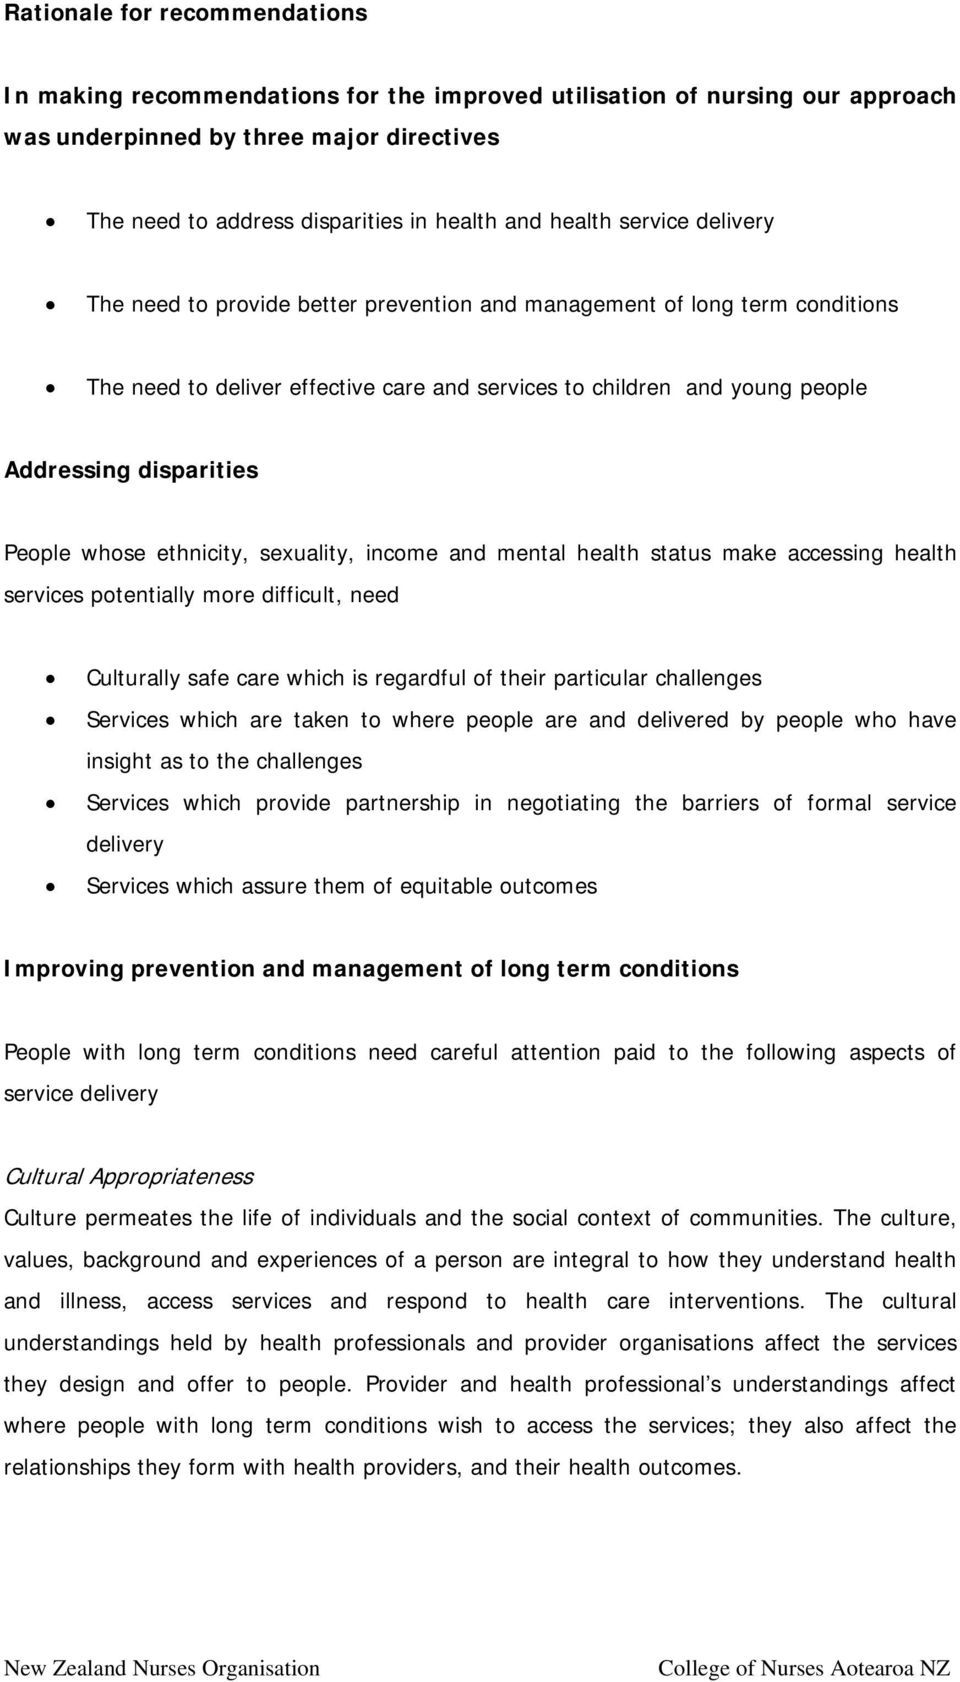 disparities People whose ethnicity, sexuality, income and mental health status make accessing health services potentially more difficult, need Culturally safe care which is regardful of their